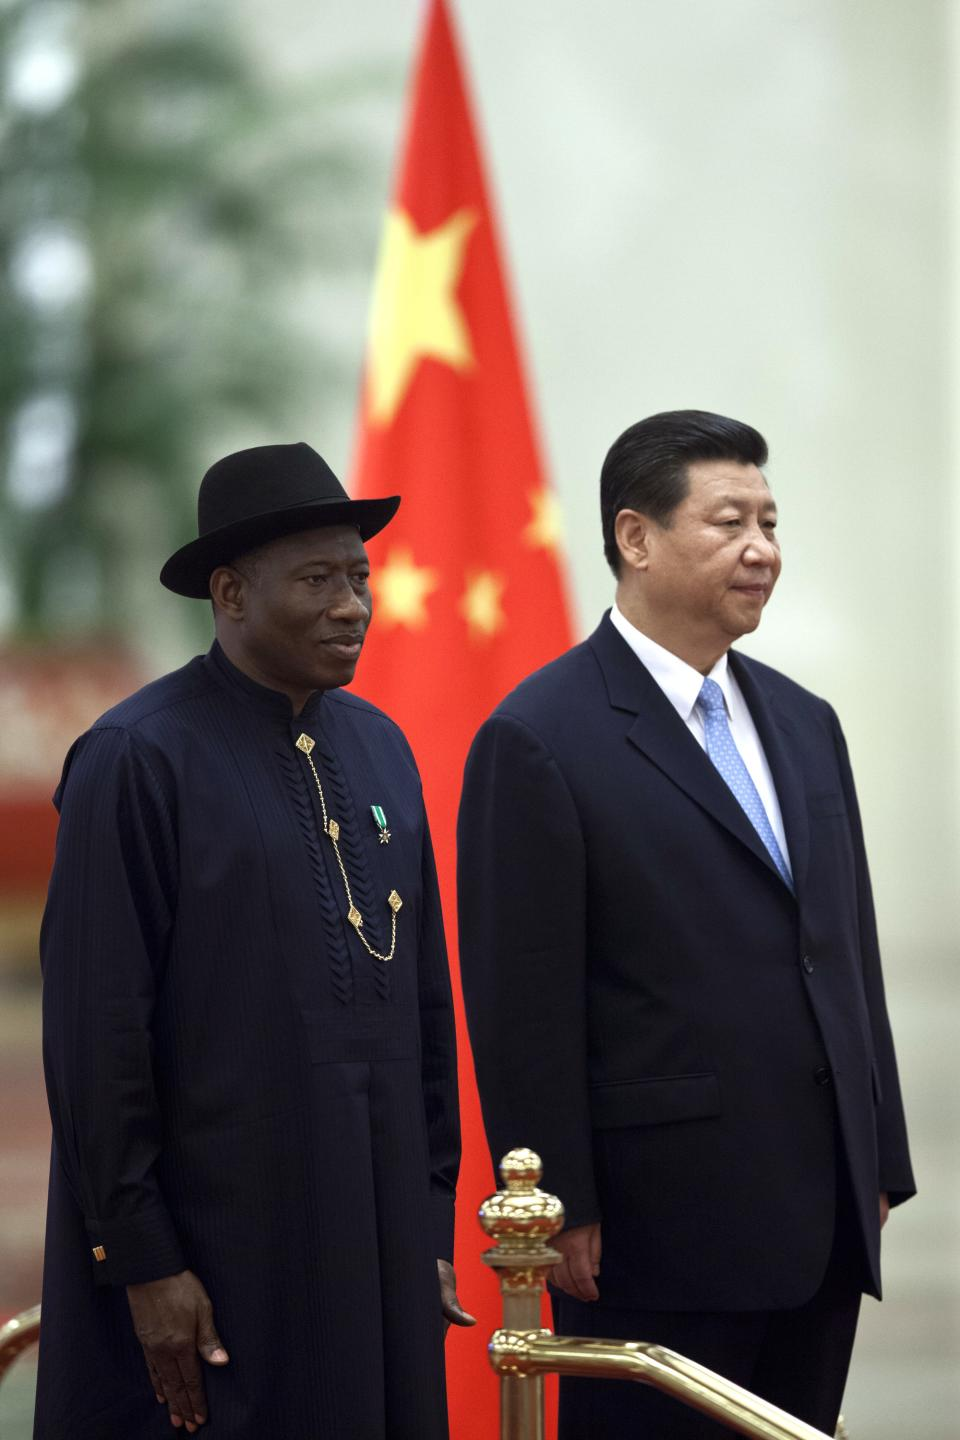 Chinese President Xi Jinping, right, stands with Nigerian President Goodluck Jonathan, left, during a welcome ceremony at the Great Hall of the People in Beijing, China, Wednesday, July 10, 2013. (AP Photo/Alexander F. Yuan)